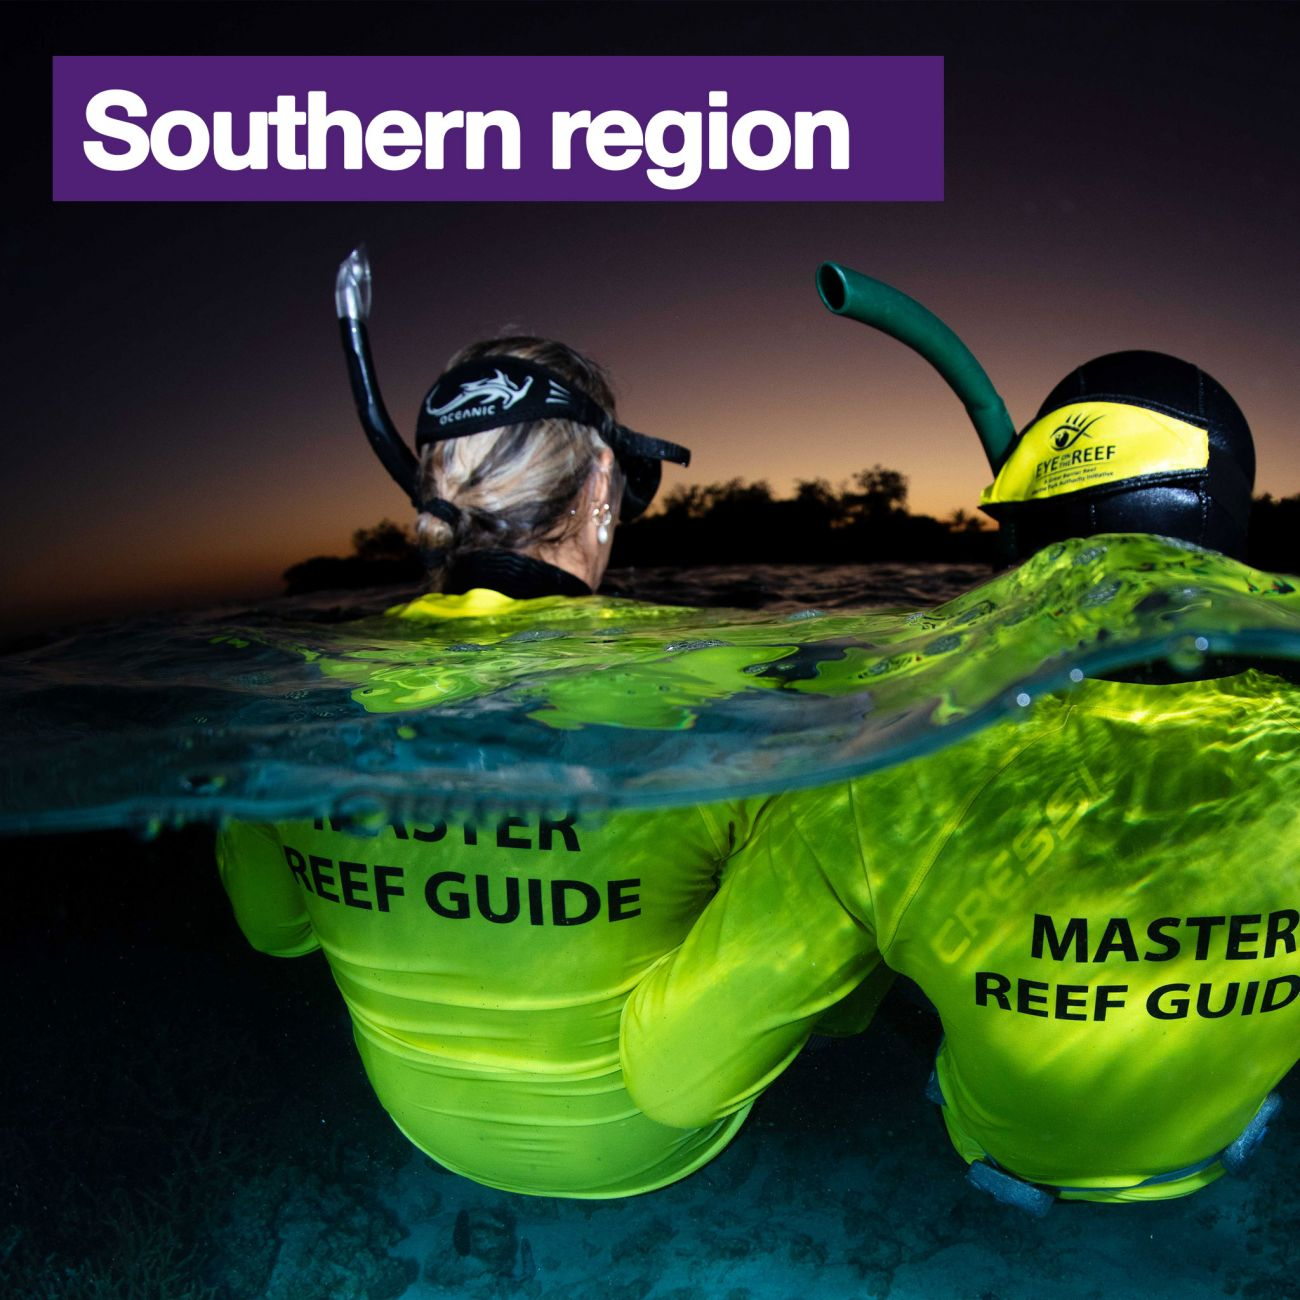 Master Reef Guides in the Southern region